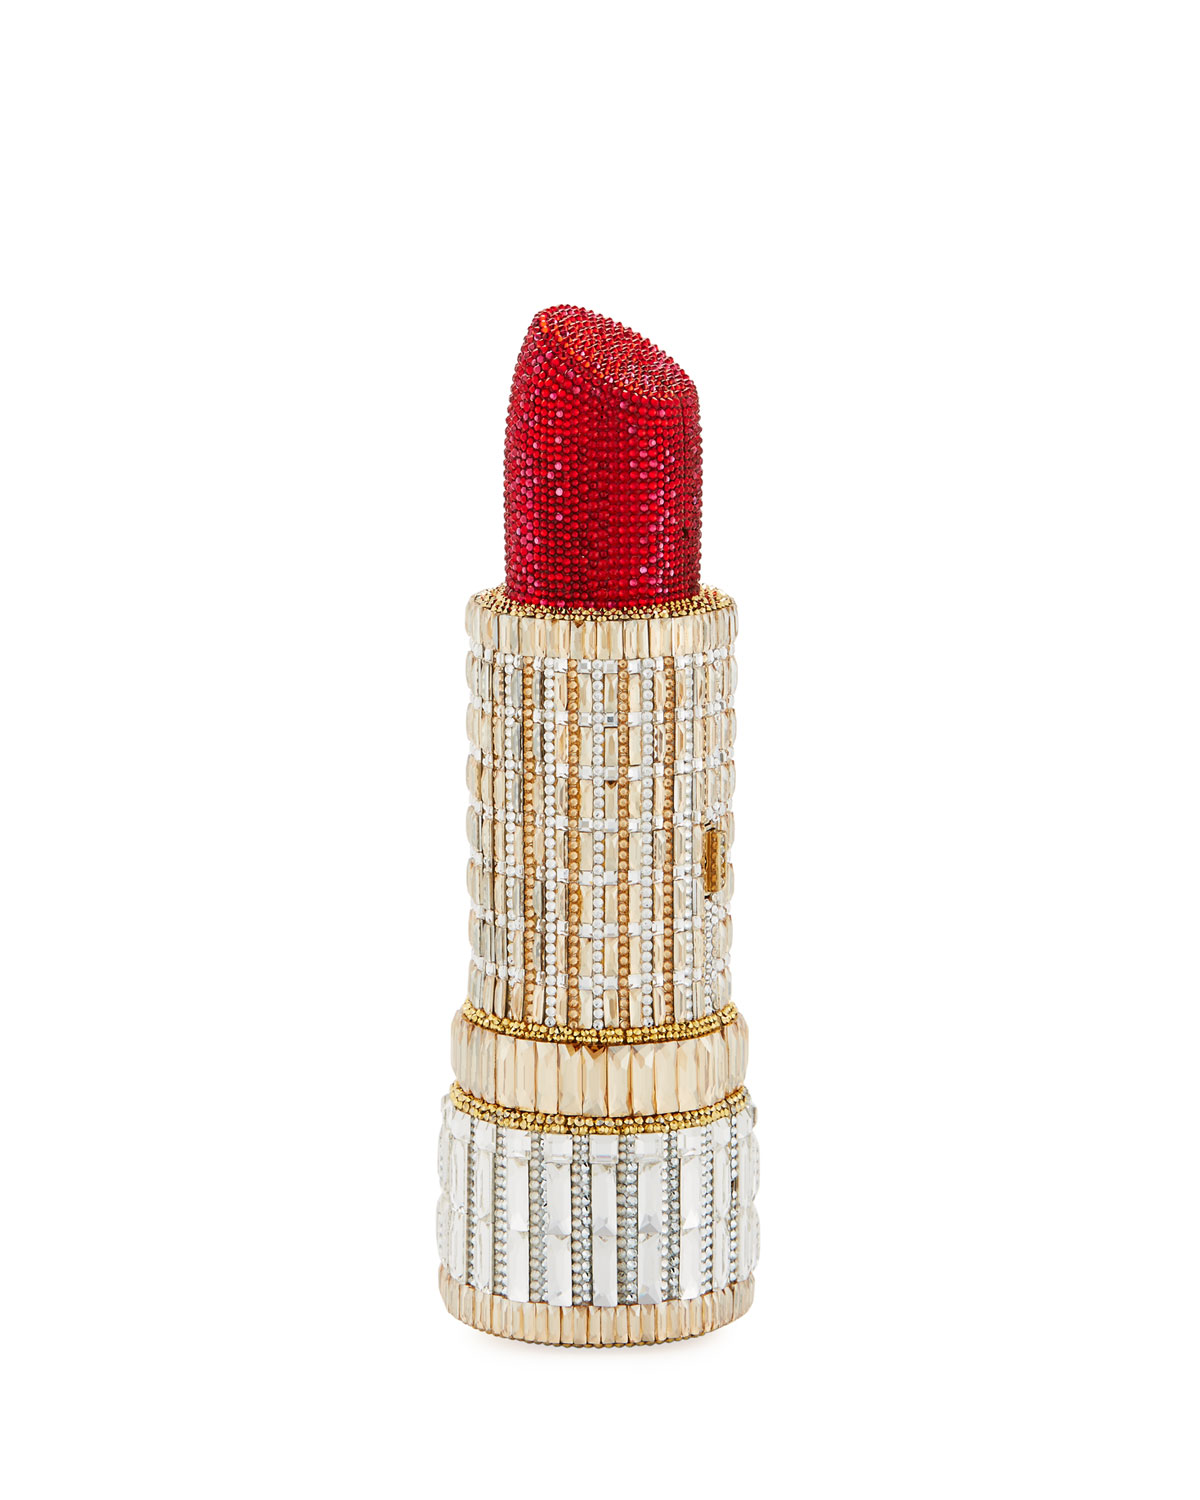 Wedding Gift Stores Nyc: Judith Leiber Couture Seductress Crystal Lipstick Clutch